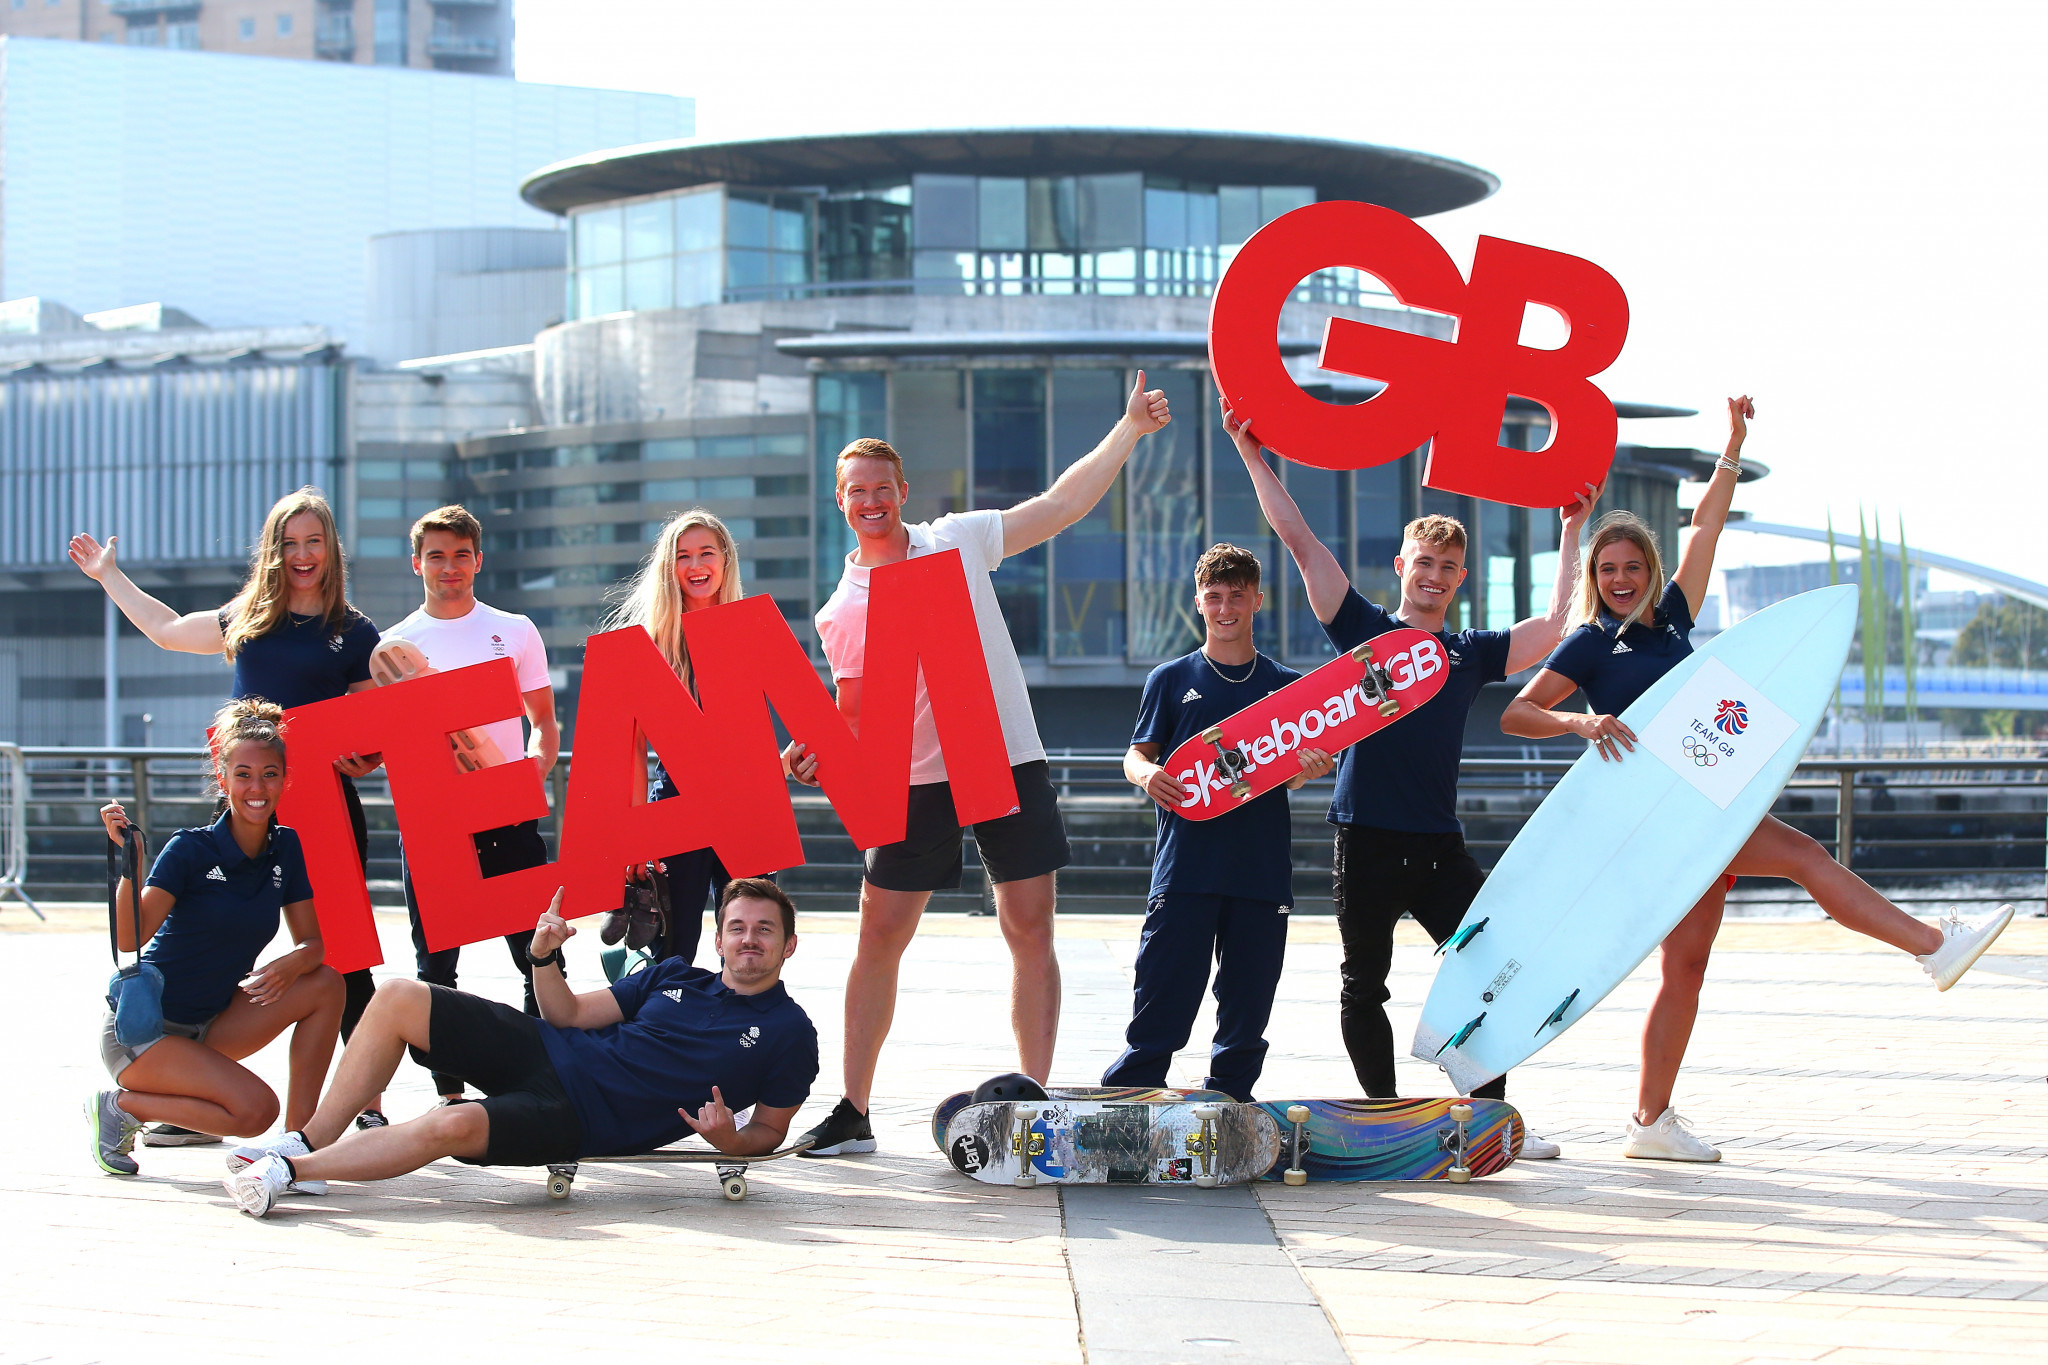 Team GB announce performance services team for Tokyo 2020